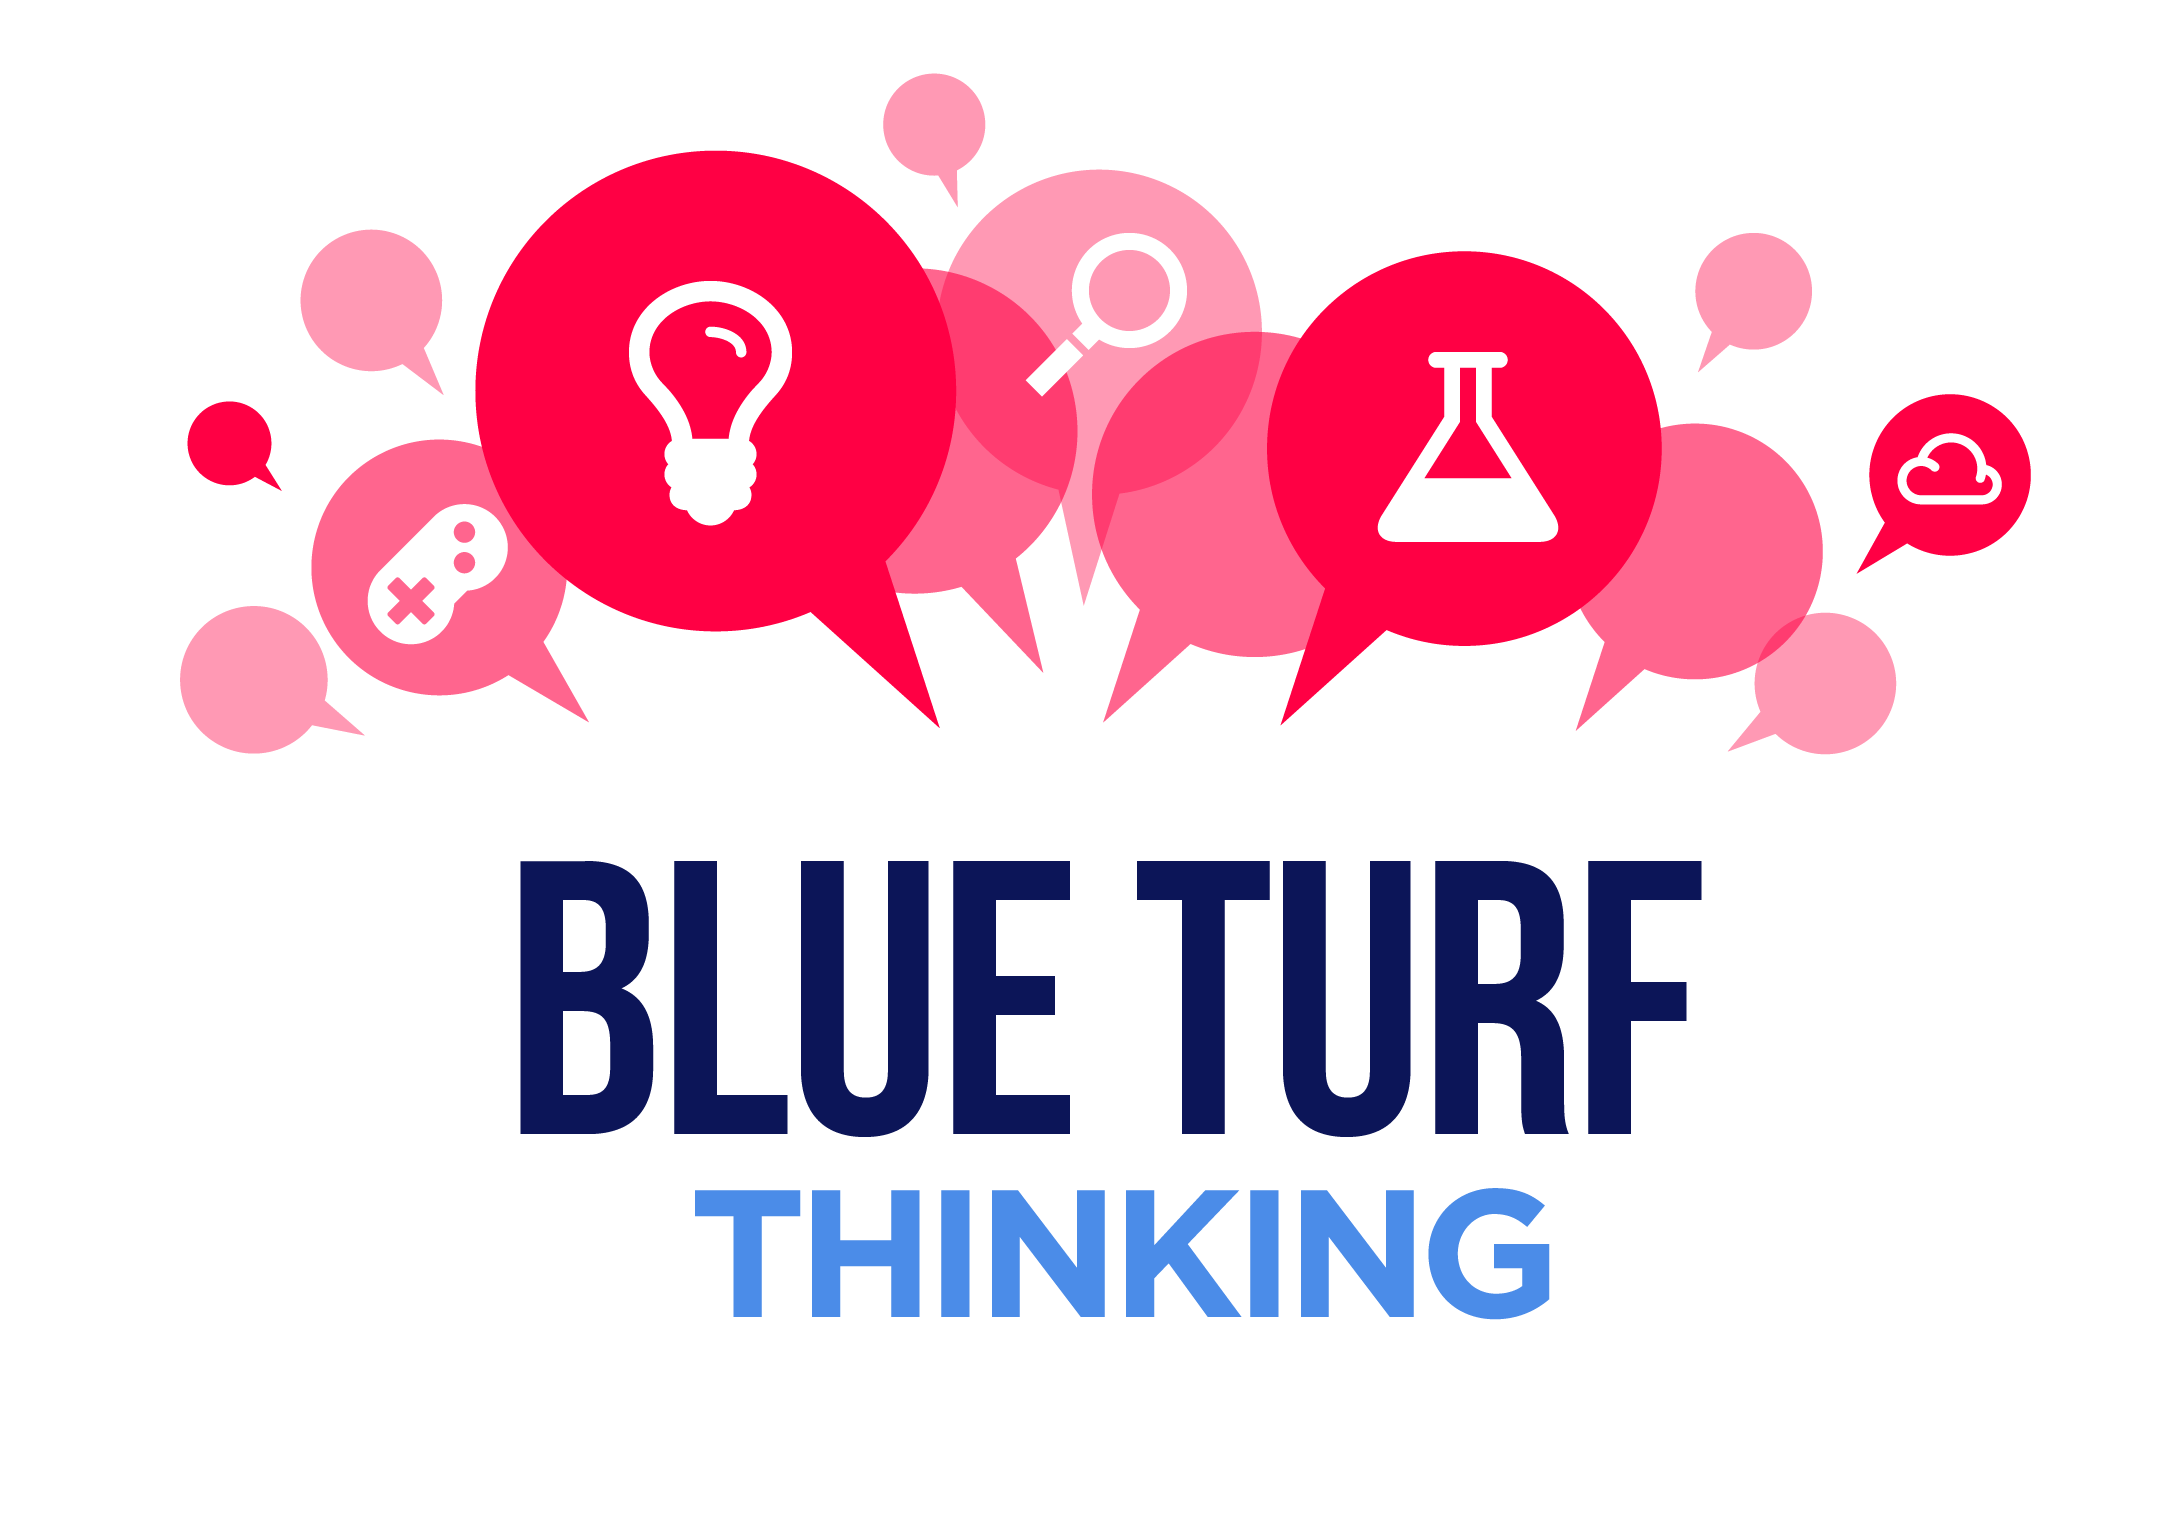 Transformation requires ground-breaking concepts. Our 'Blue Turf Thinking' created a hockey Olympic standout and our bold innovations will continue to lead the market.